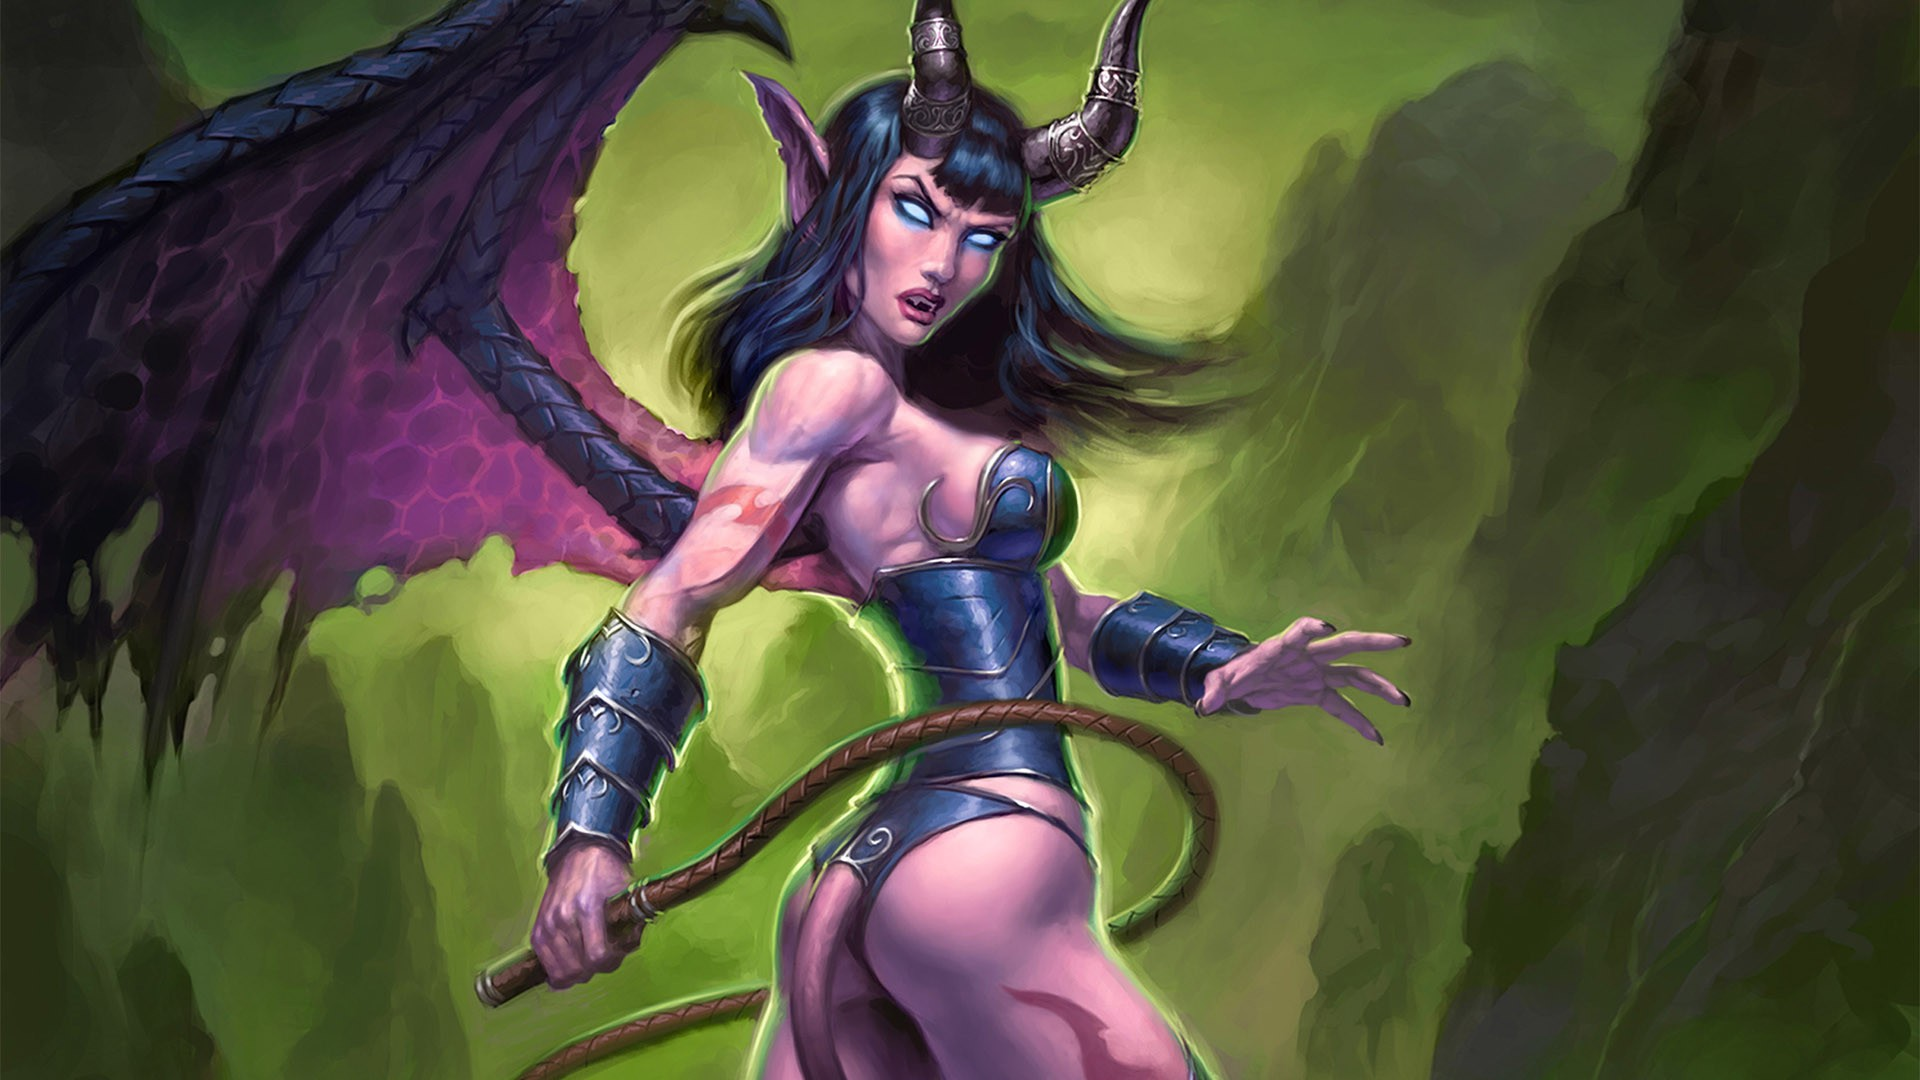 General 1920x1080 succubus video games World of Warcraft fantasy girl demon horns demon girls